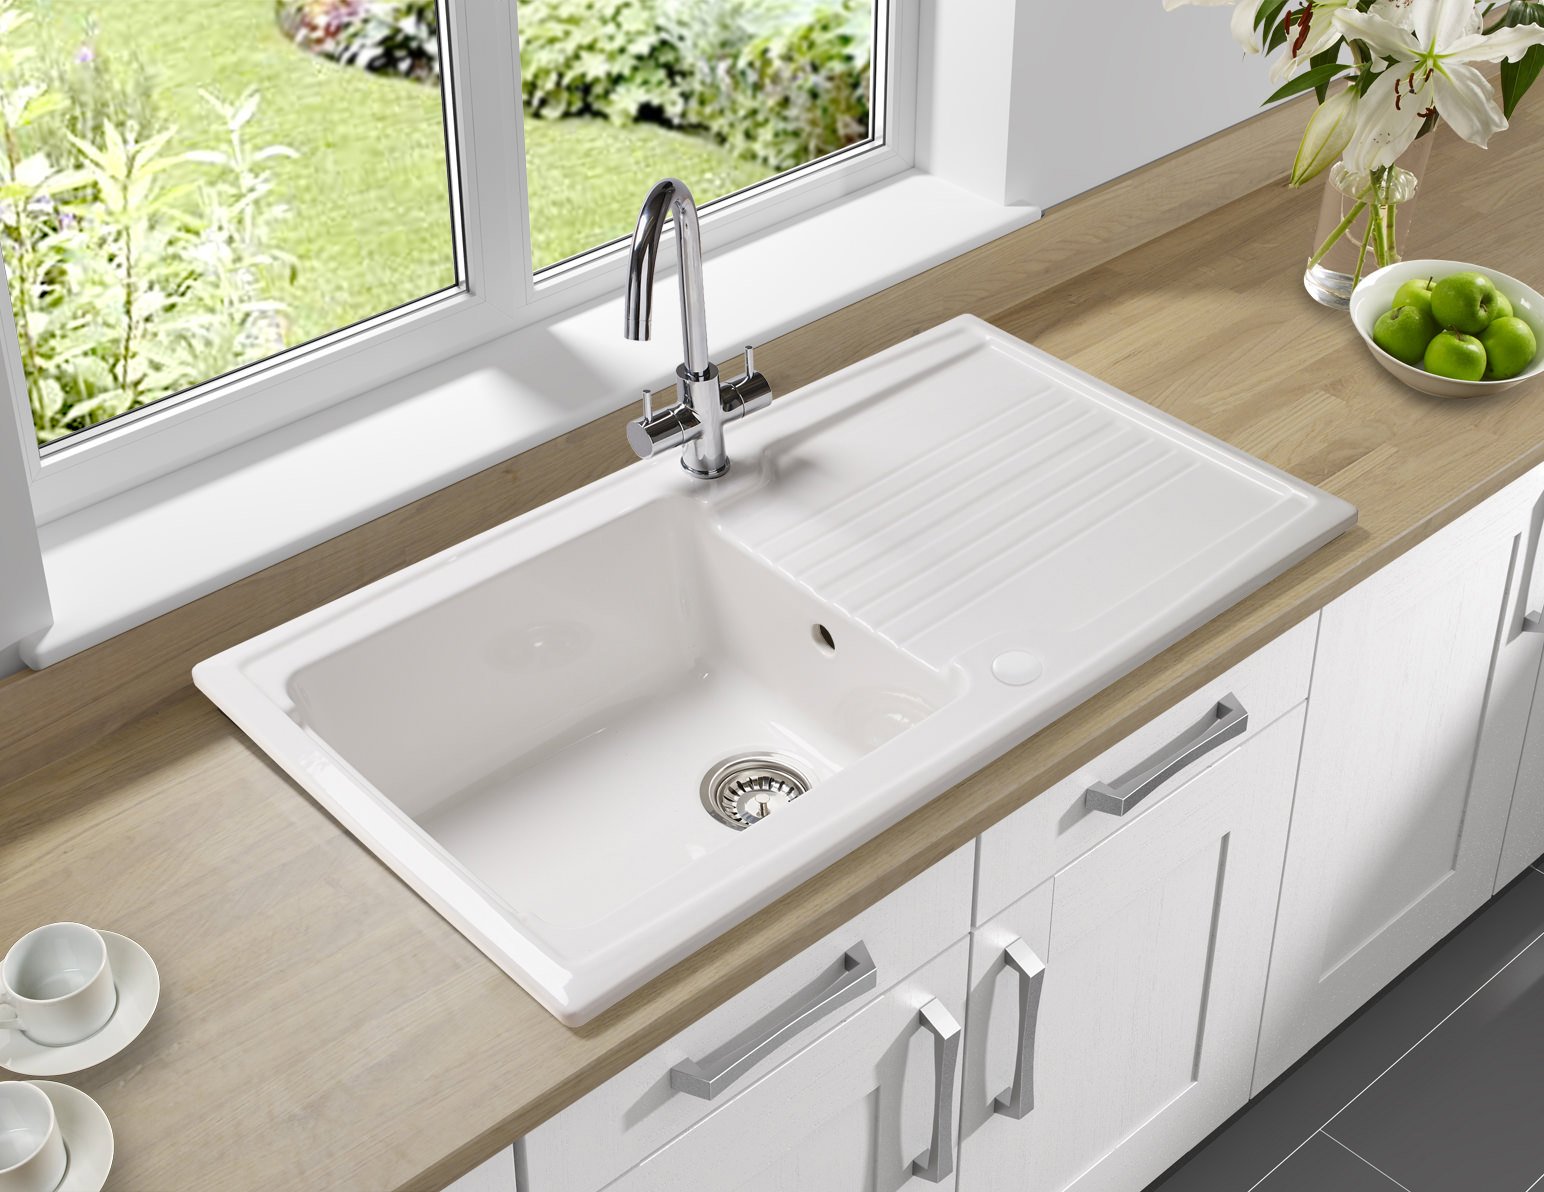 Astracast Equinox 1.0 Bowl Ceramic Inset Kitchen Sink